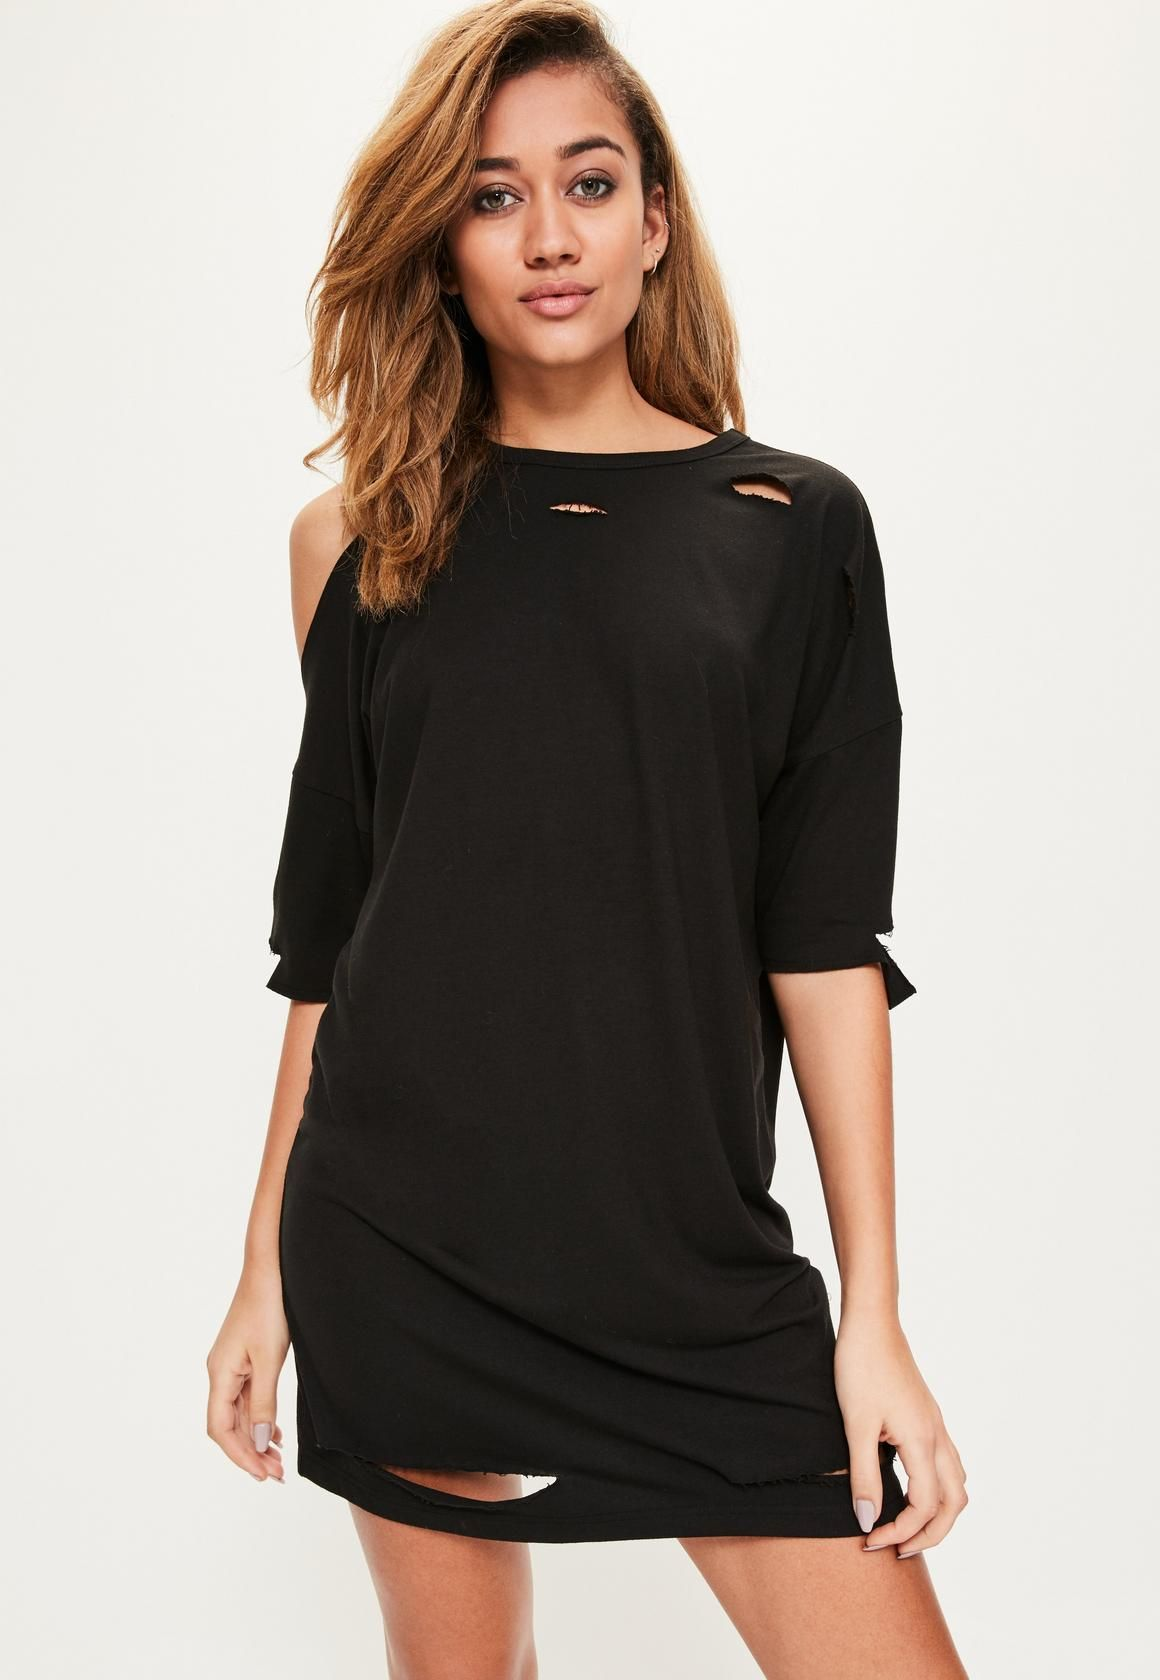 Black shirt dress - Missguided Black One Shoulder Distressed T Shirt Dress